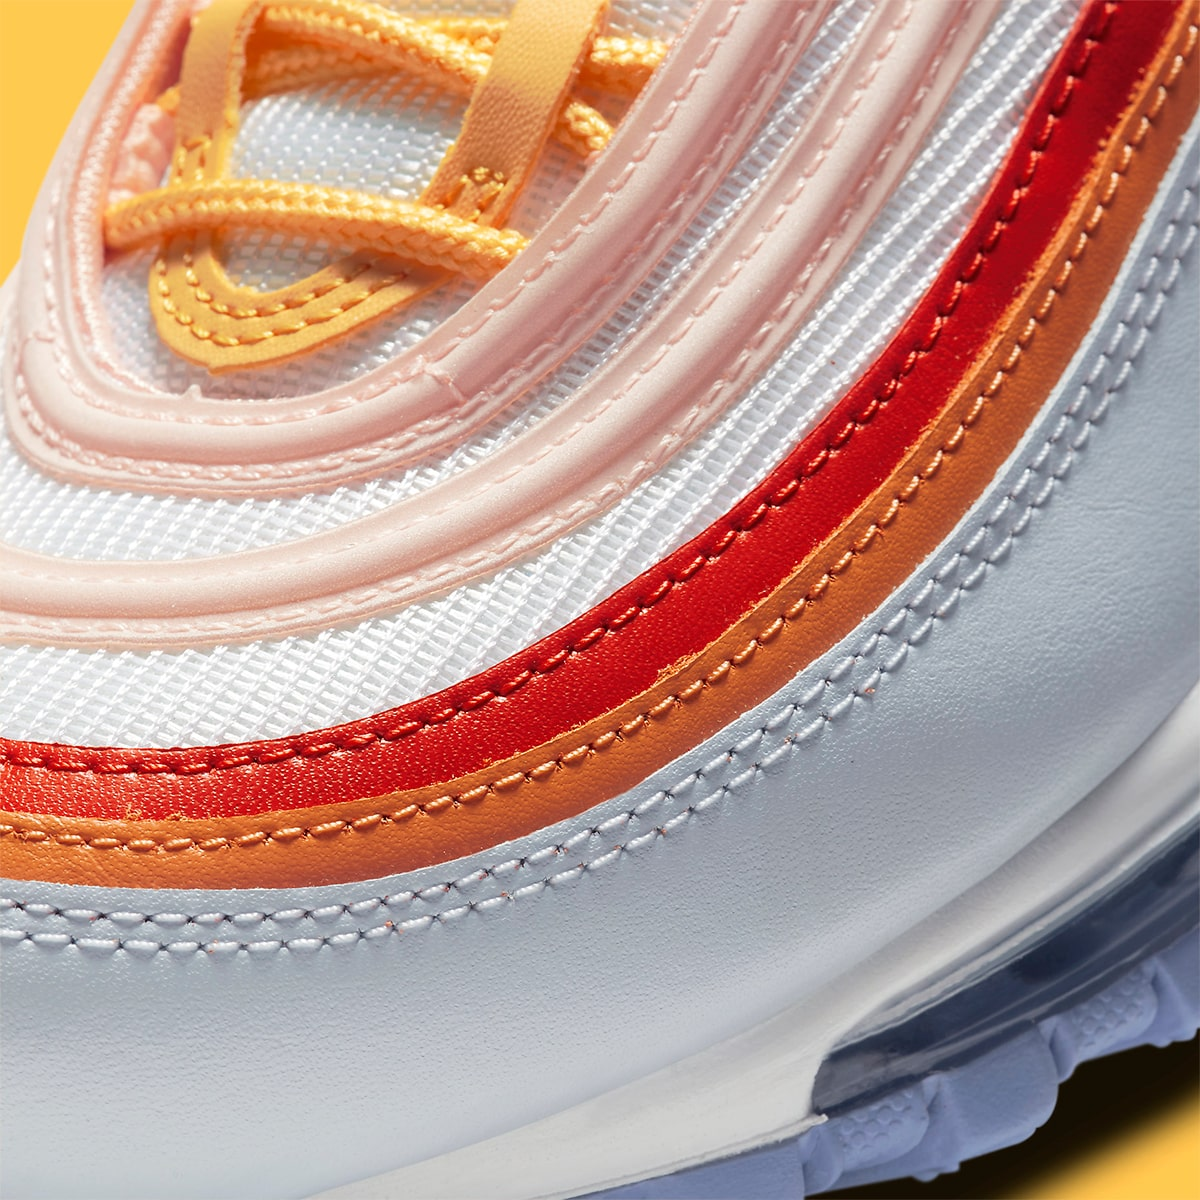 nike air max 97 white pink lavender red oragne cw5588 001 release date info 7